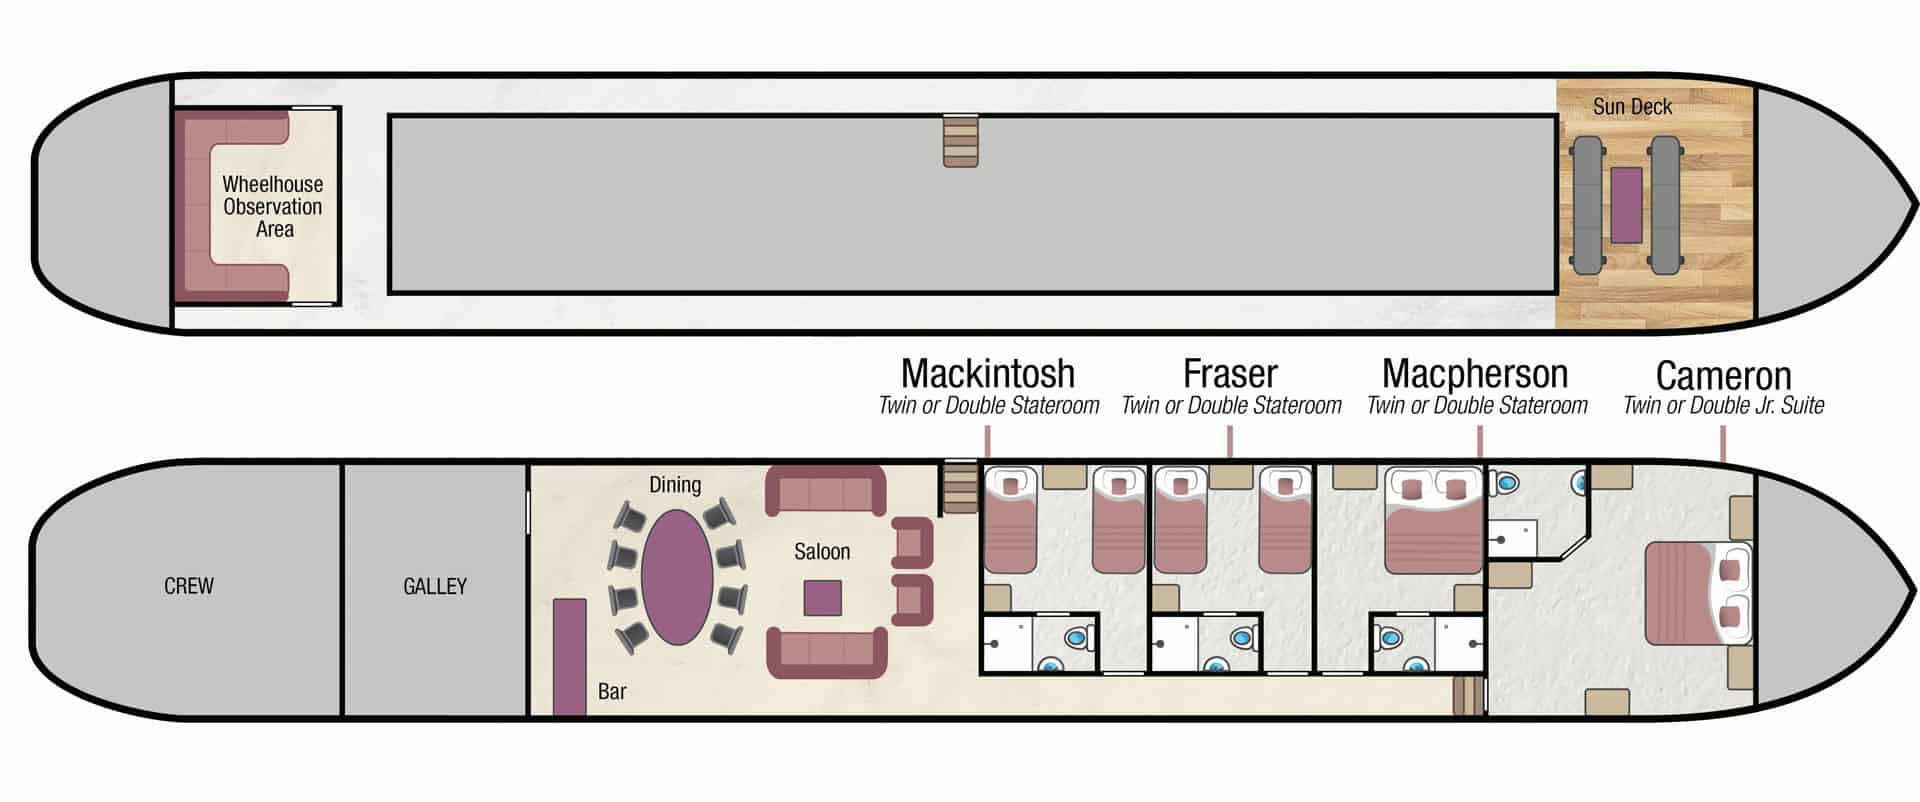 Deckplan of Scottish Highlander barge with 2 decks, 3 staterooms, 1 suite, sun deck, dining room, saloon & observation area.